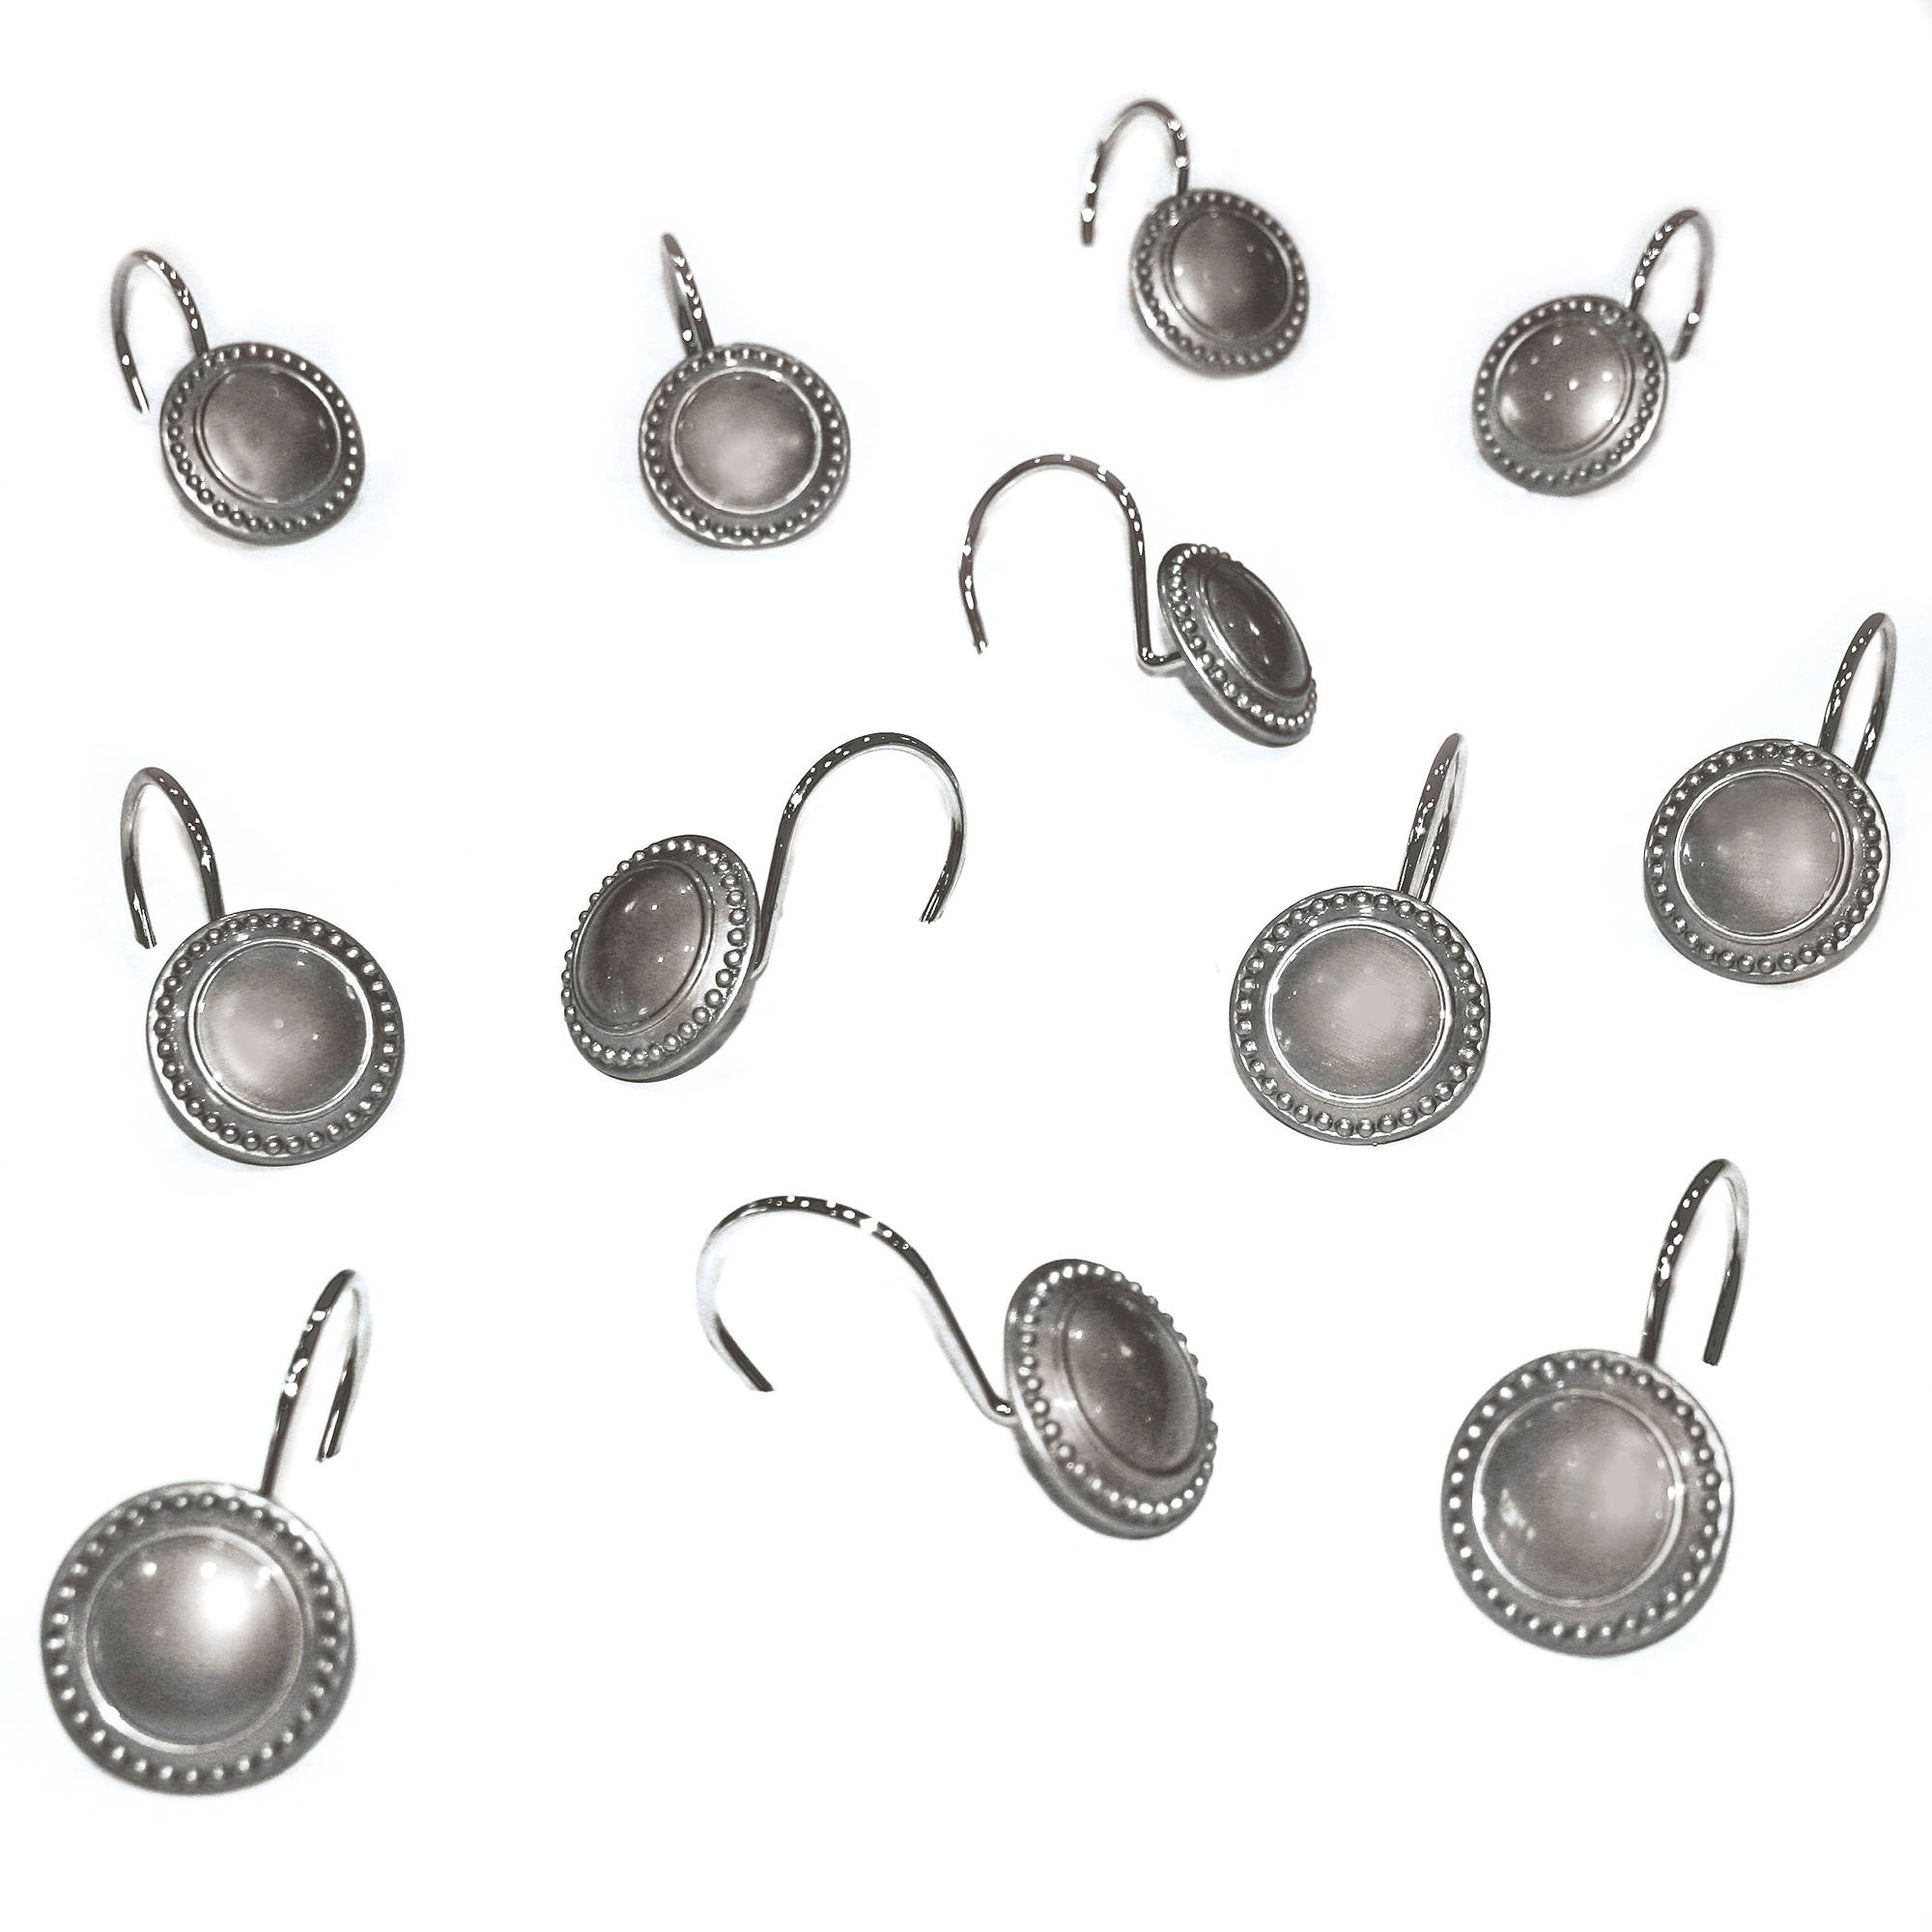 Better Homes and Gardens Metal Decorative Accessories - 12 Piece Shower Hooks